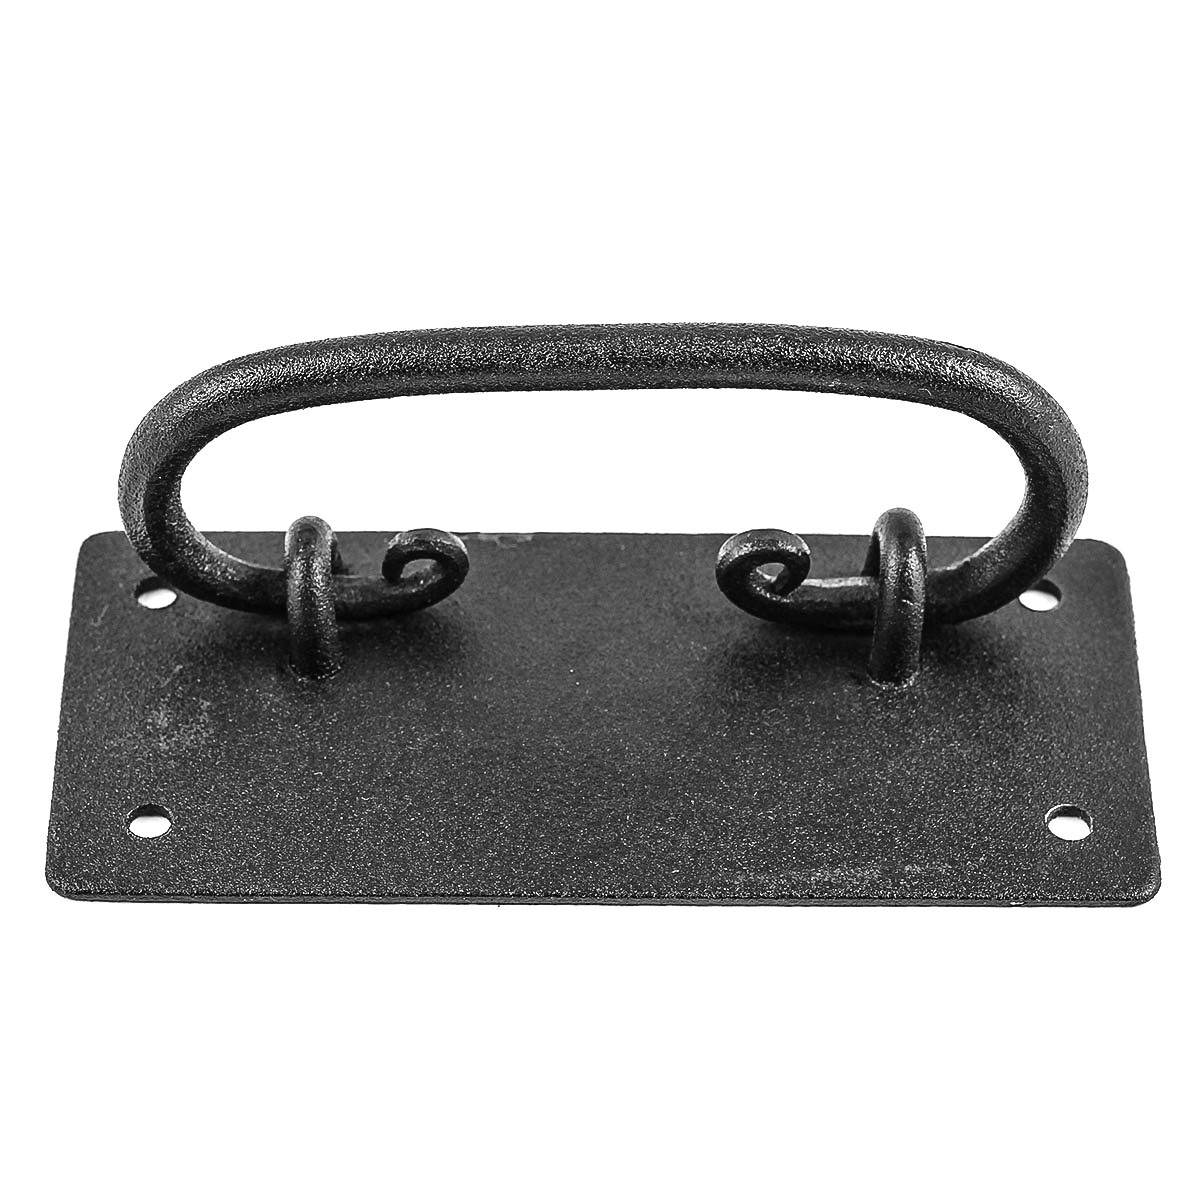 Cabinet Drawer Door Pull Black Wrought Iron Mission 4 Wrought Iron Drawer Pulls Black Door Hinges Antique Drawer Pulls For Cabinets